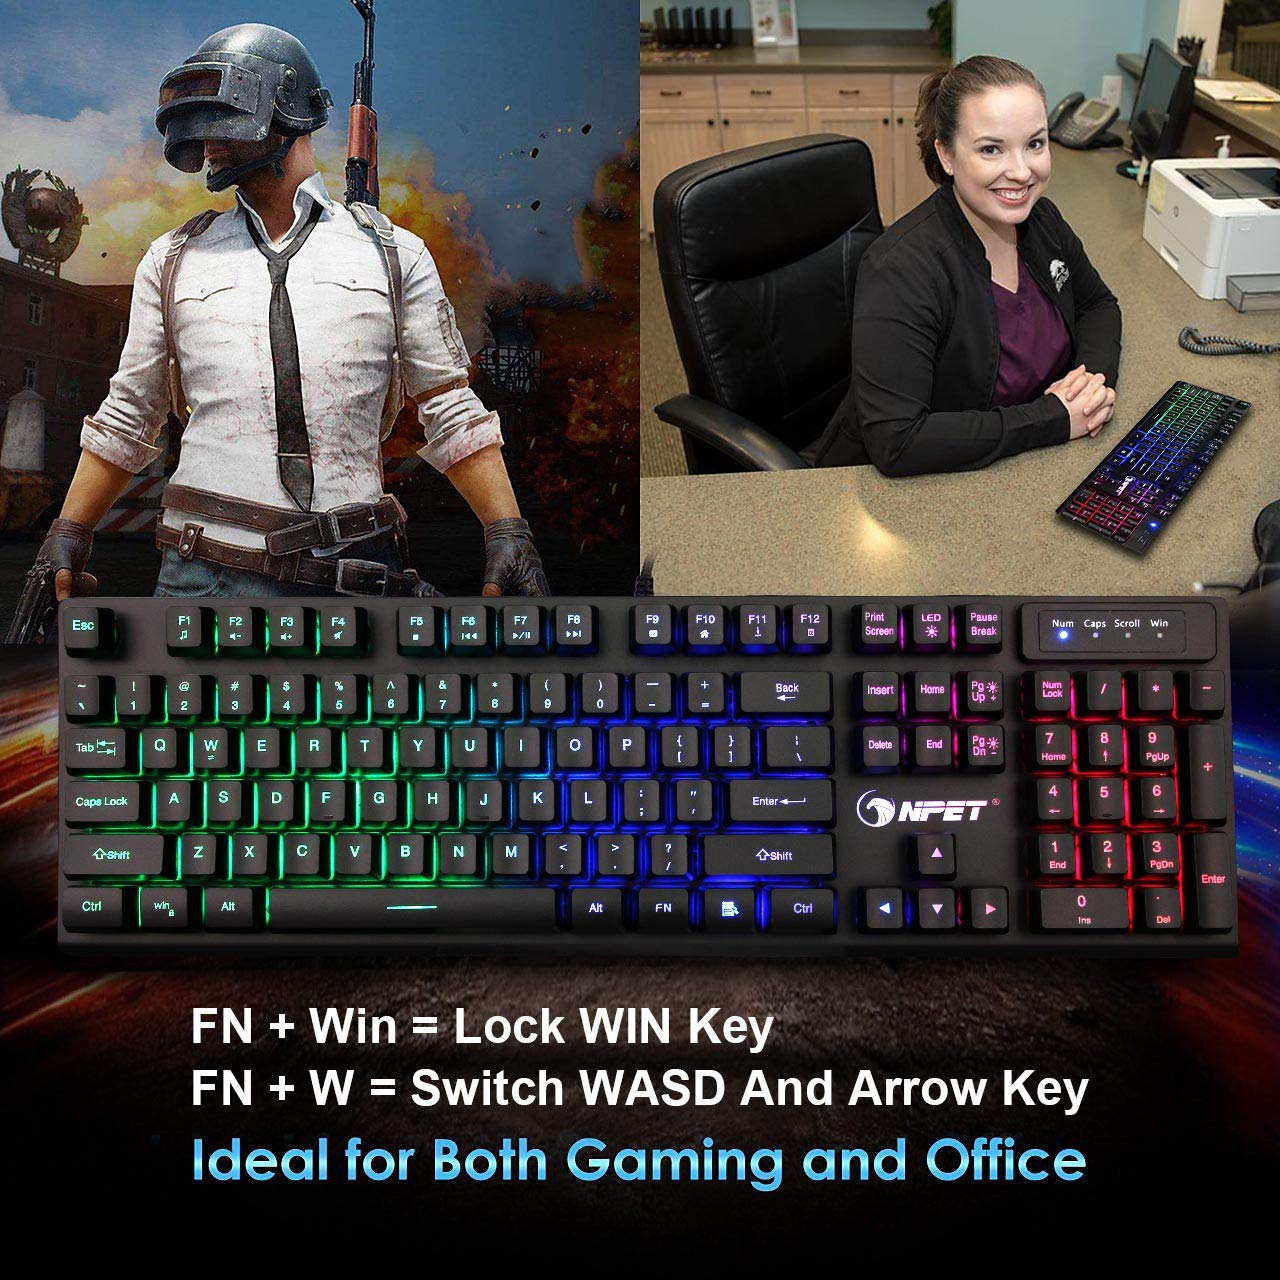 Mechanical Feeling Mini Gaming Keypad with Palm-Rest 33 Programmable Keys RGB Backlit USB Wired Keyboard for LOL//PUBG//Fortnite//Wow//Dota//OW NPET T10 One Handed Gaming Keyboard